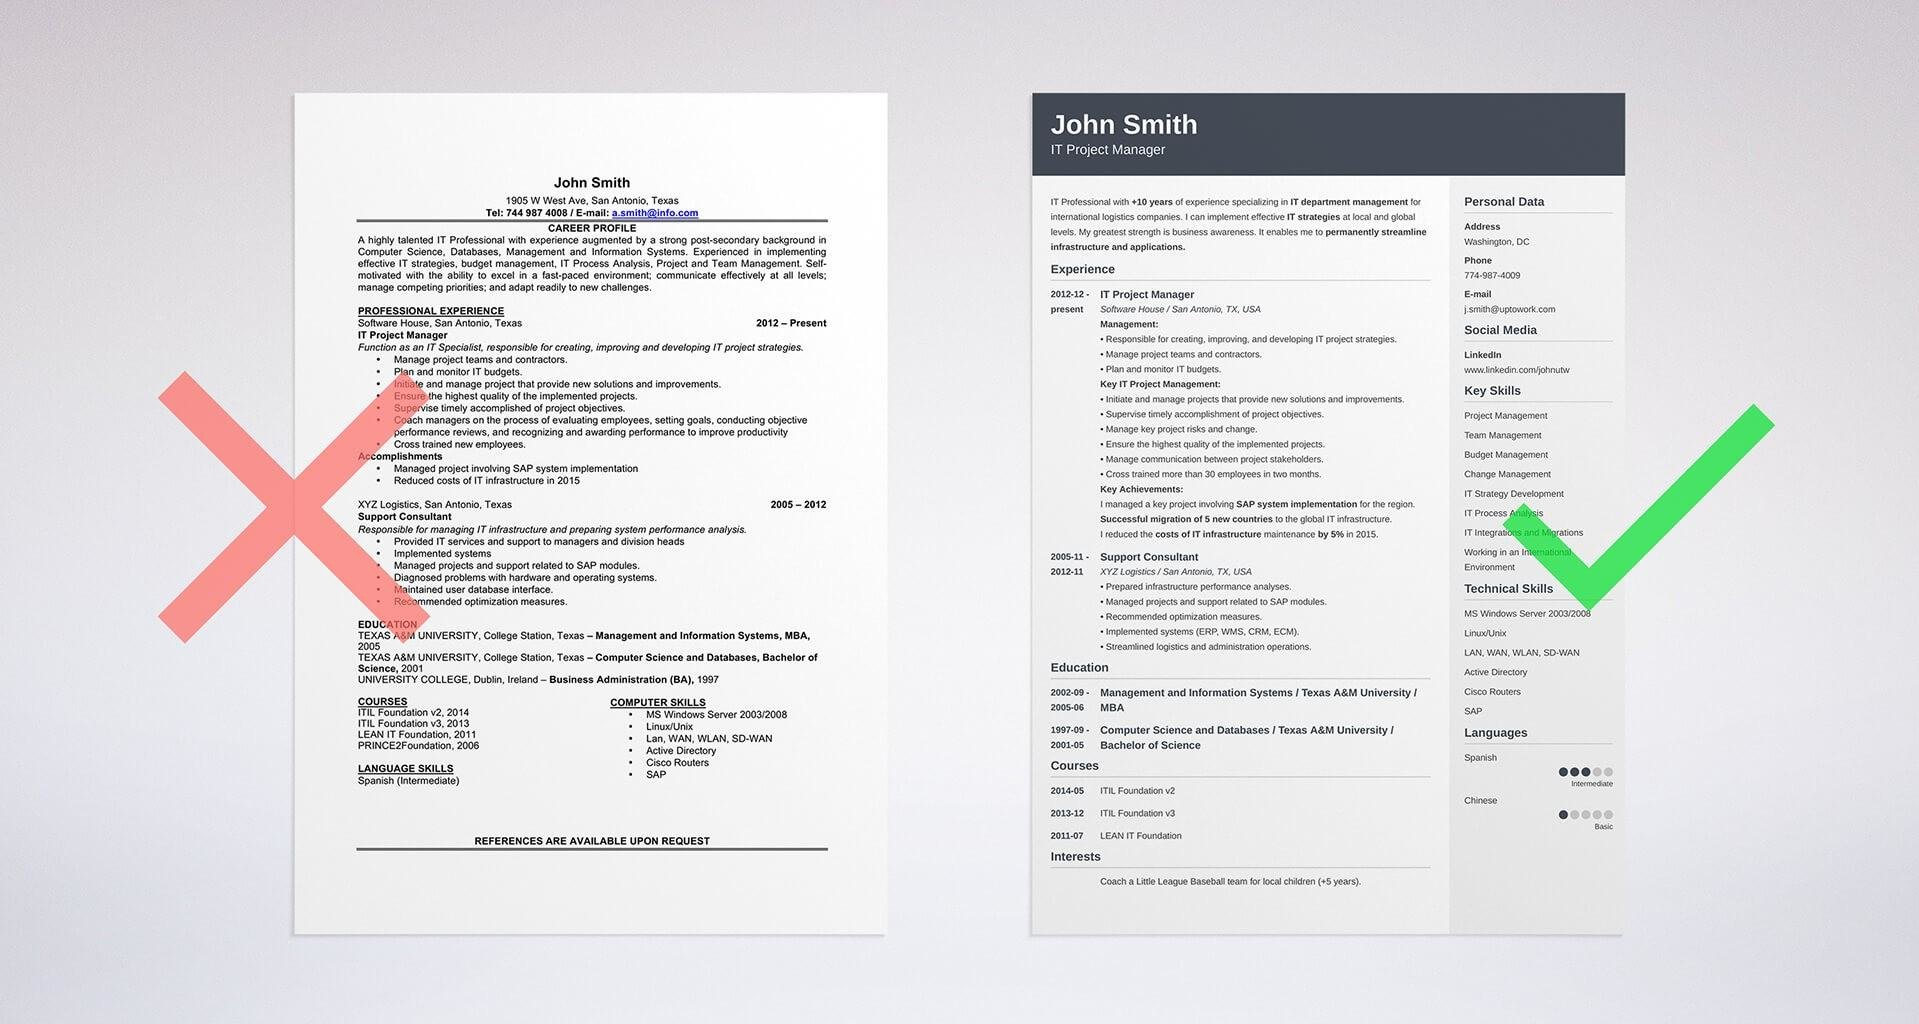 resume objective examples career objectives for all jobs experienced it makeover zoom Resume Career Objective For Resume For Experienced